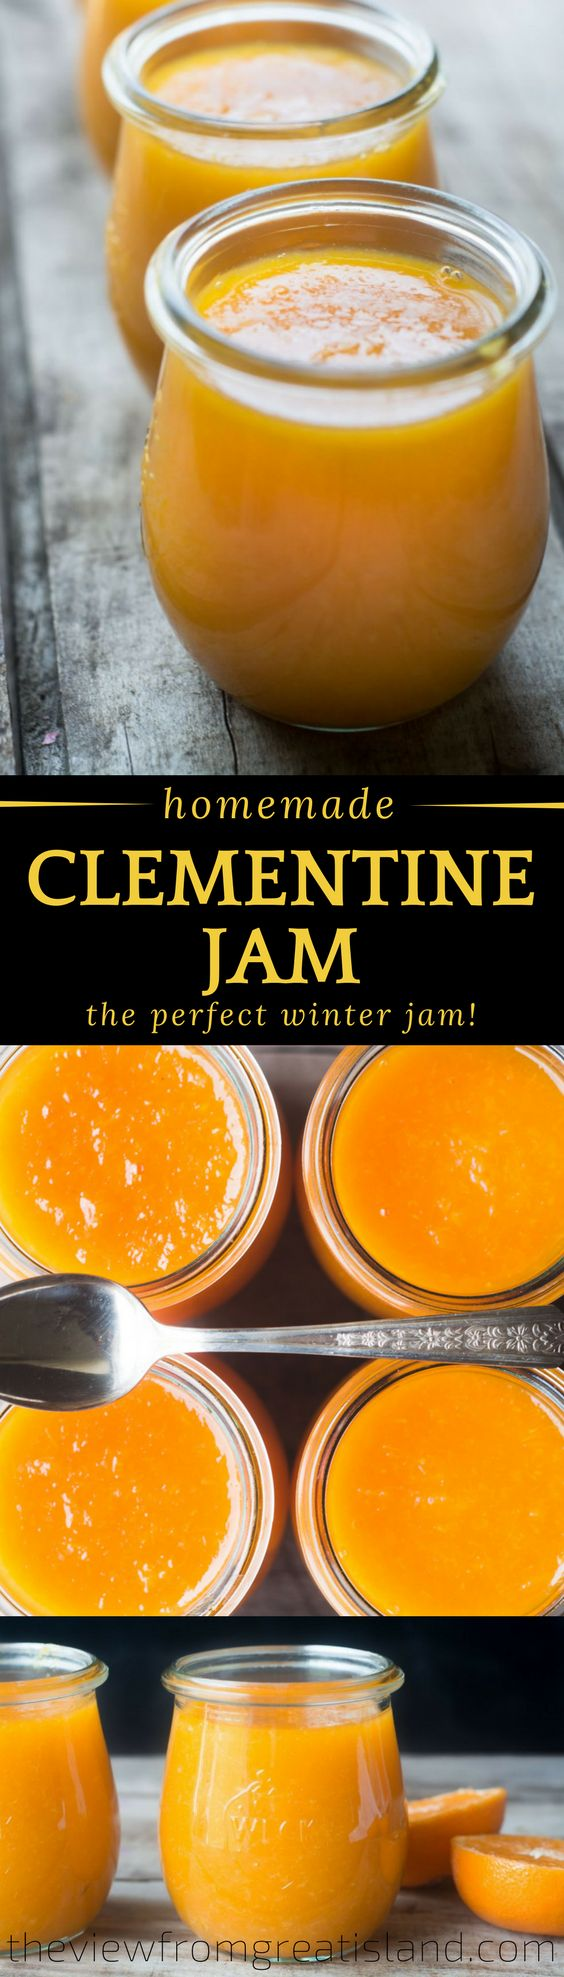 Clementine Jam has a unique, brilliantly fresh flavor that plays well with all kinds of toast, croissants, scones, and biscuits.  #jam #preserves #Clementines #citrus #marmalade #canning #winter #breakfast #tangerines #citrusfruit #citrusjam #glutenfree  Food, easy recipes, quick recipes, easy dinner recipes, healthy dinner, healthy recipes, restaurant reviews, best new restaurants, food porn, cocktail recipes, summer cocktails, easy cocktails.